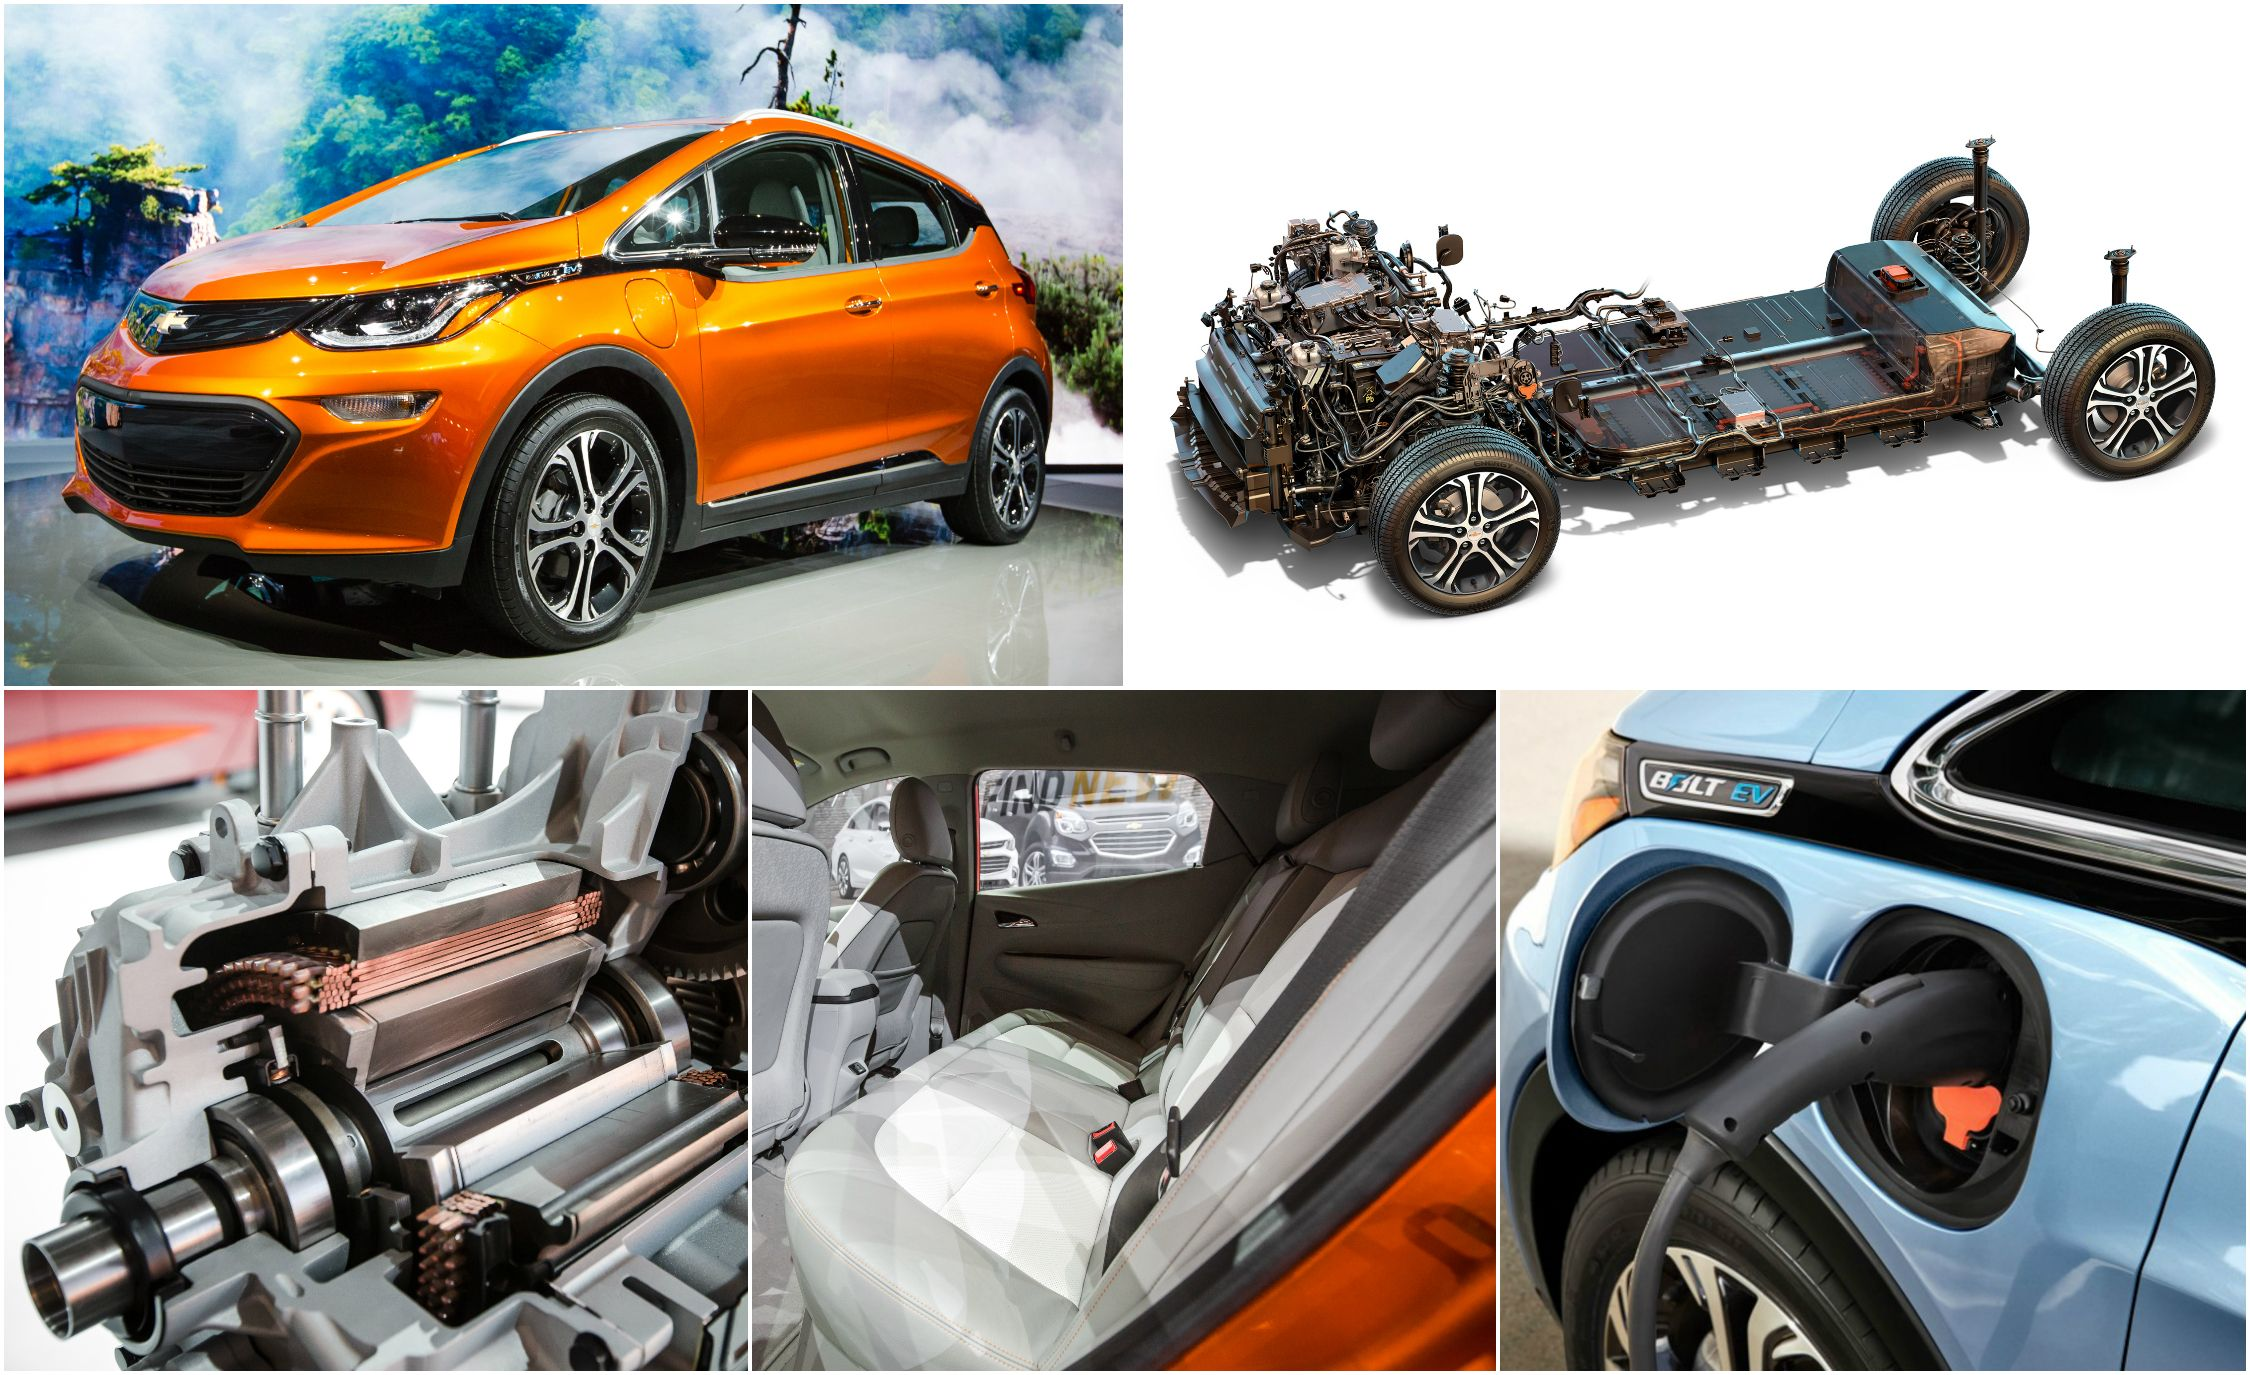 12 Things to Know About Chevrolet's $30,000 Bolt EV